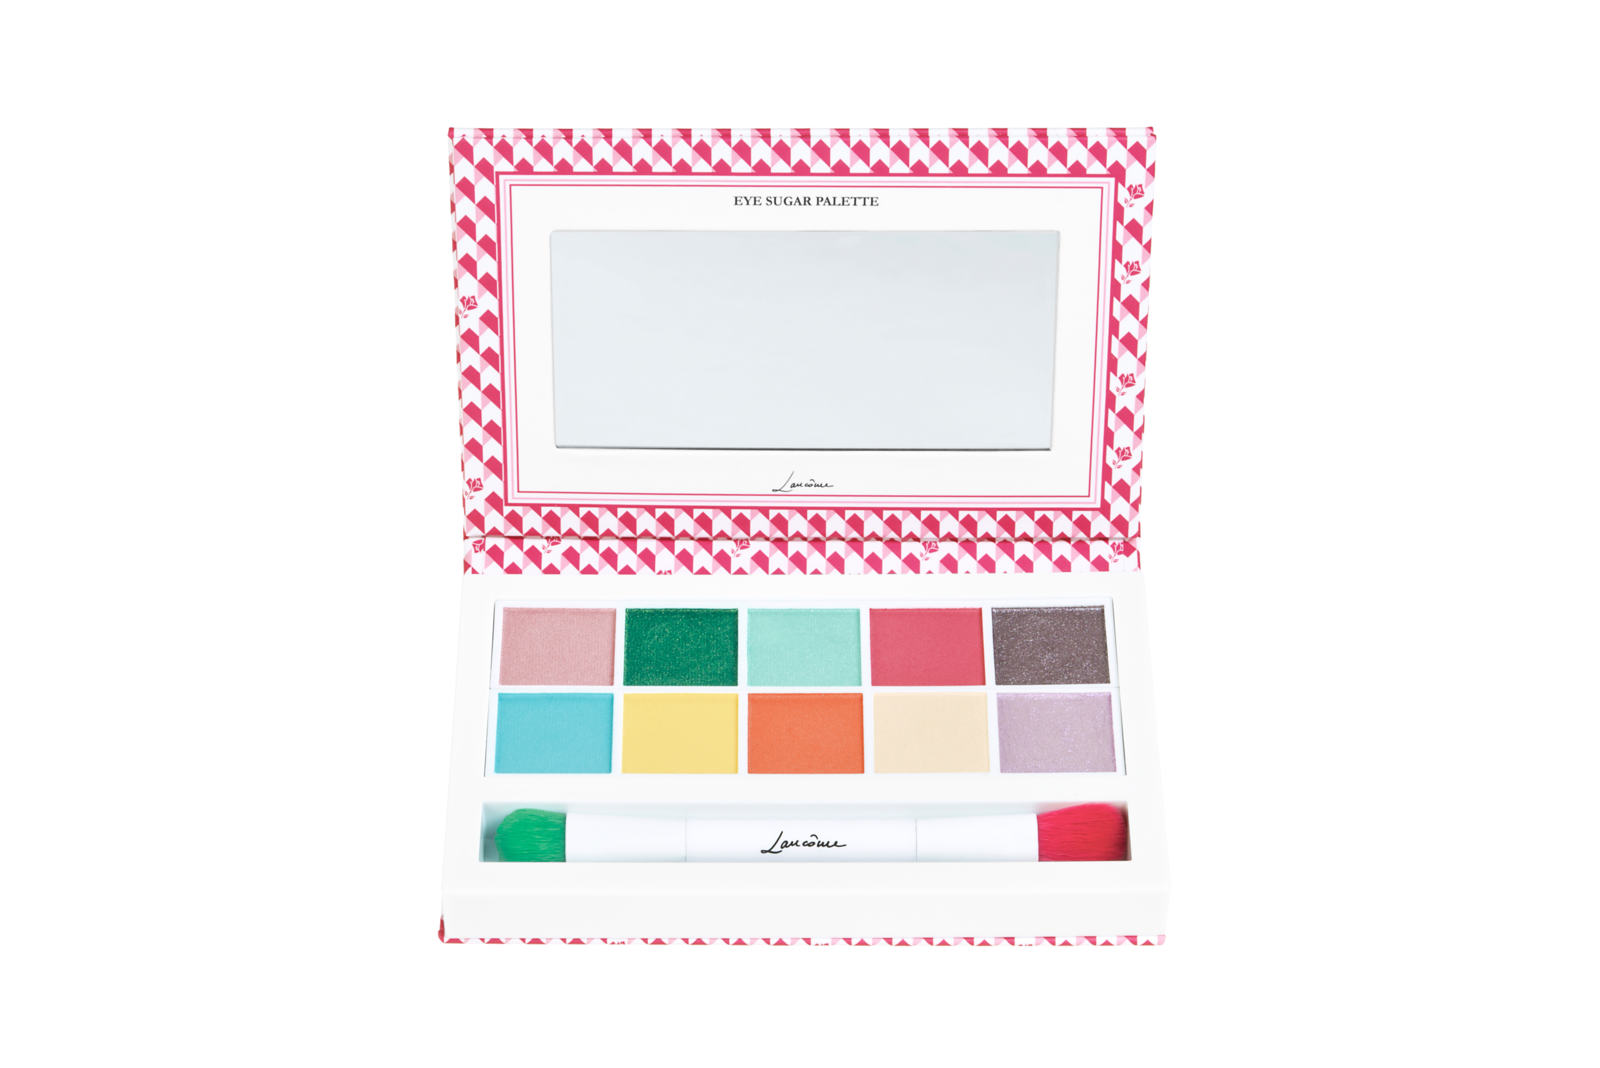 Eye Sugar Palette